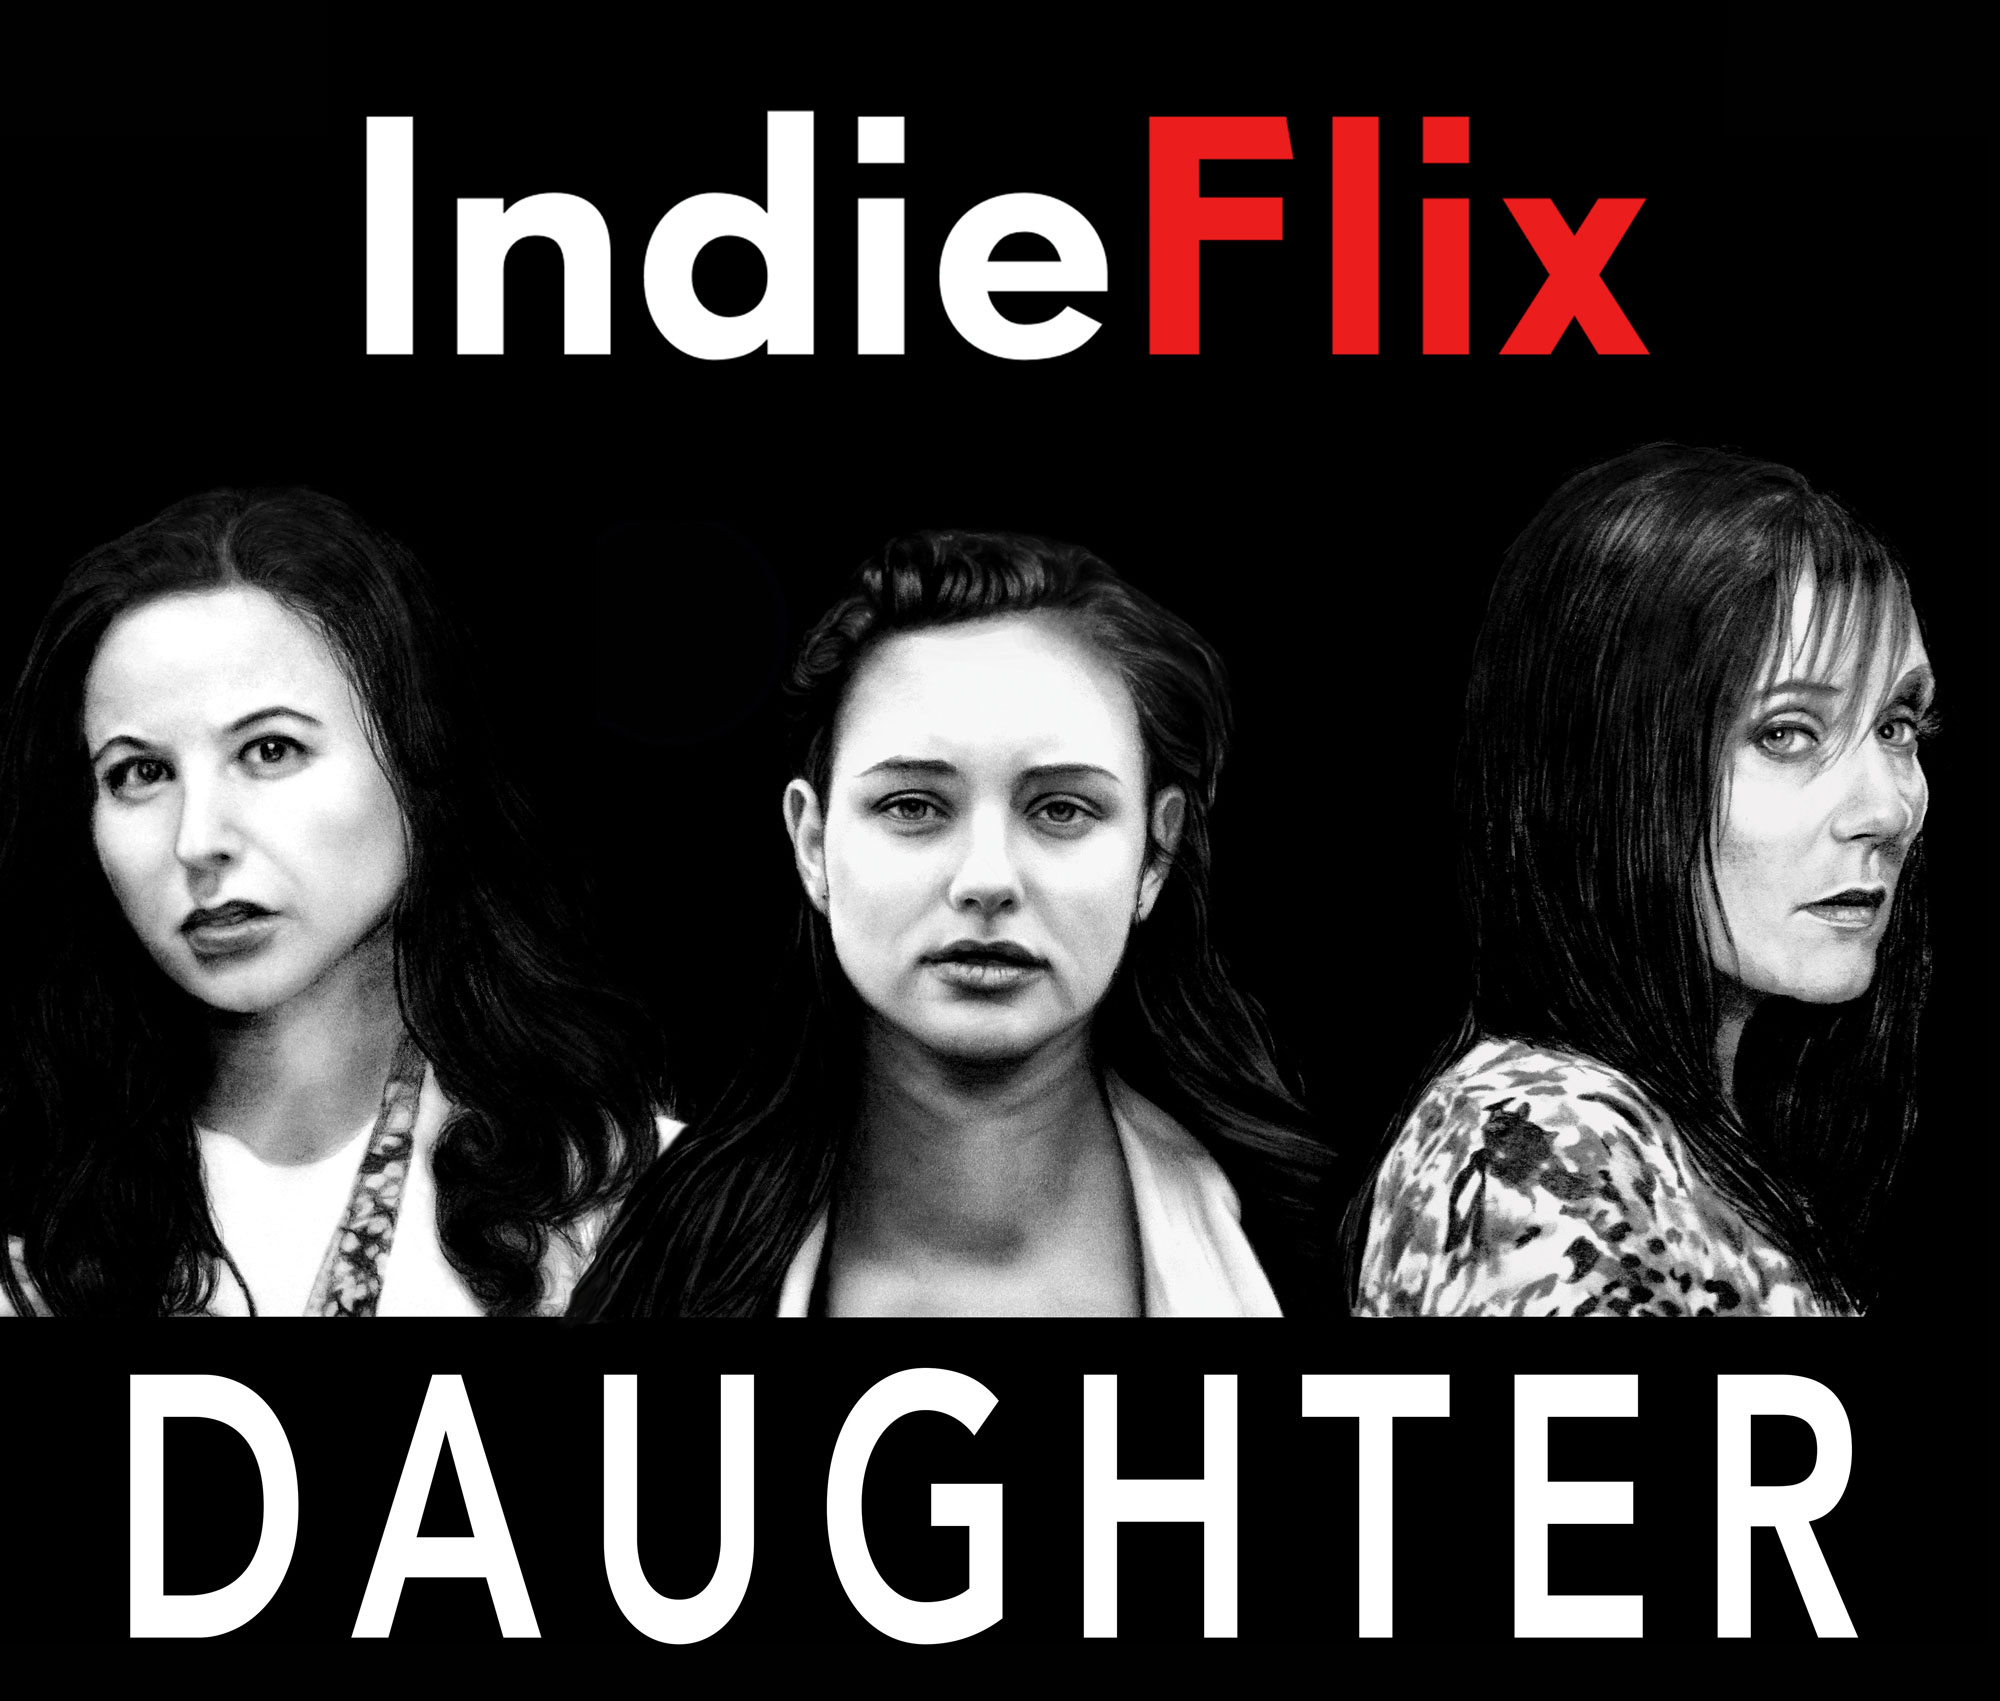 Daughter-Poster-IndieFlix.jpg